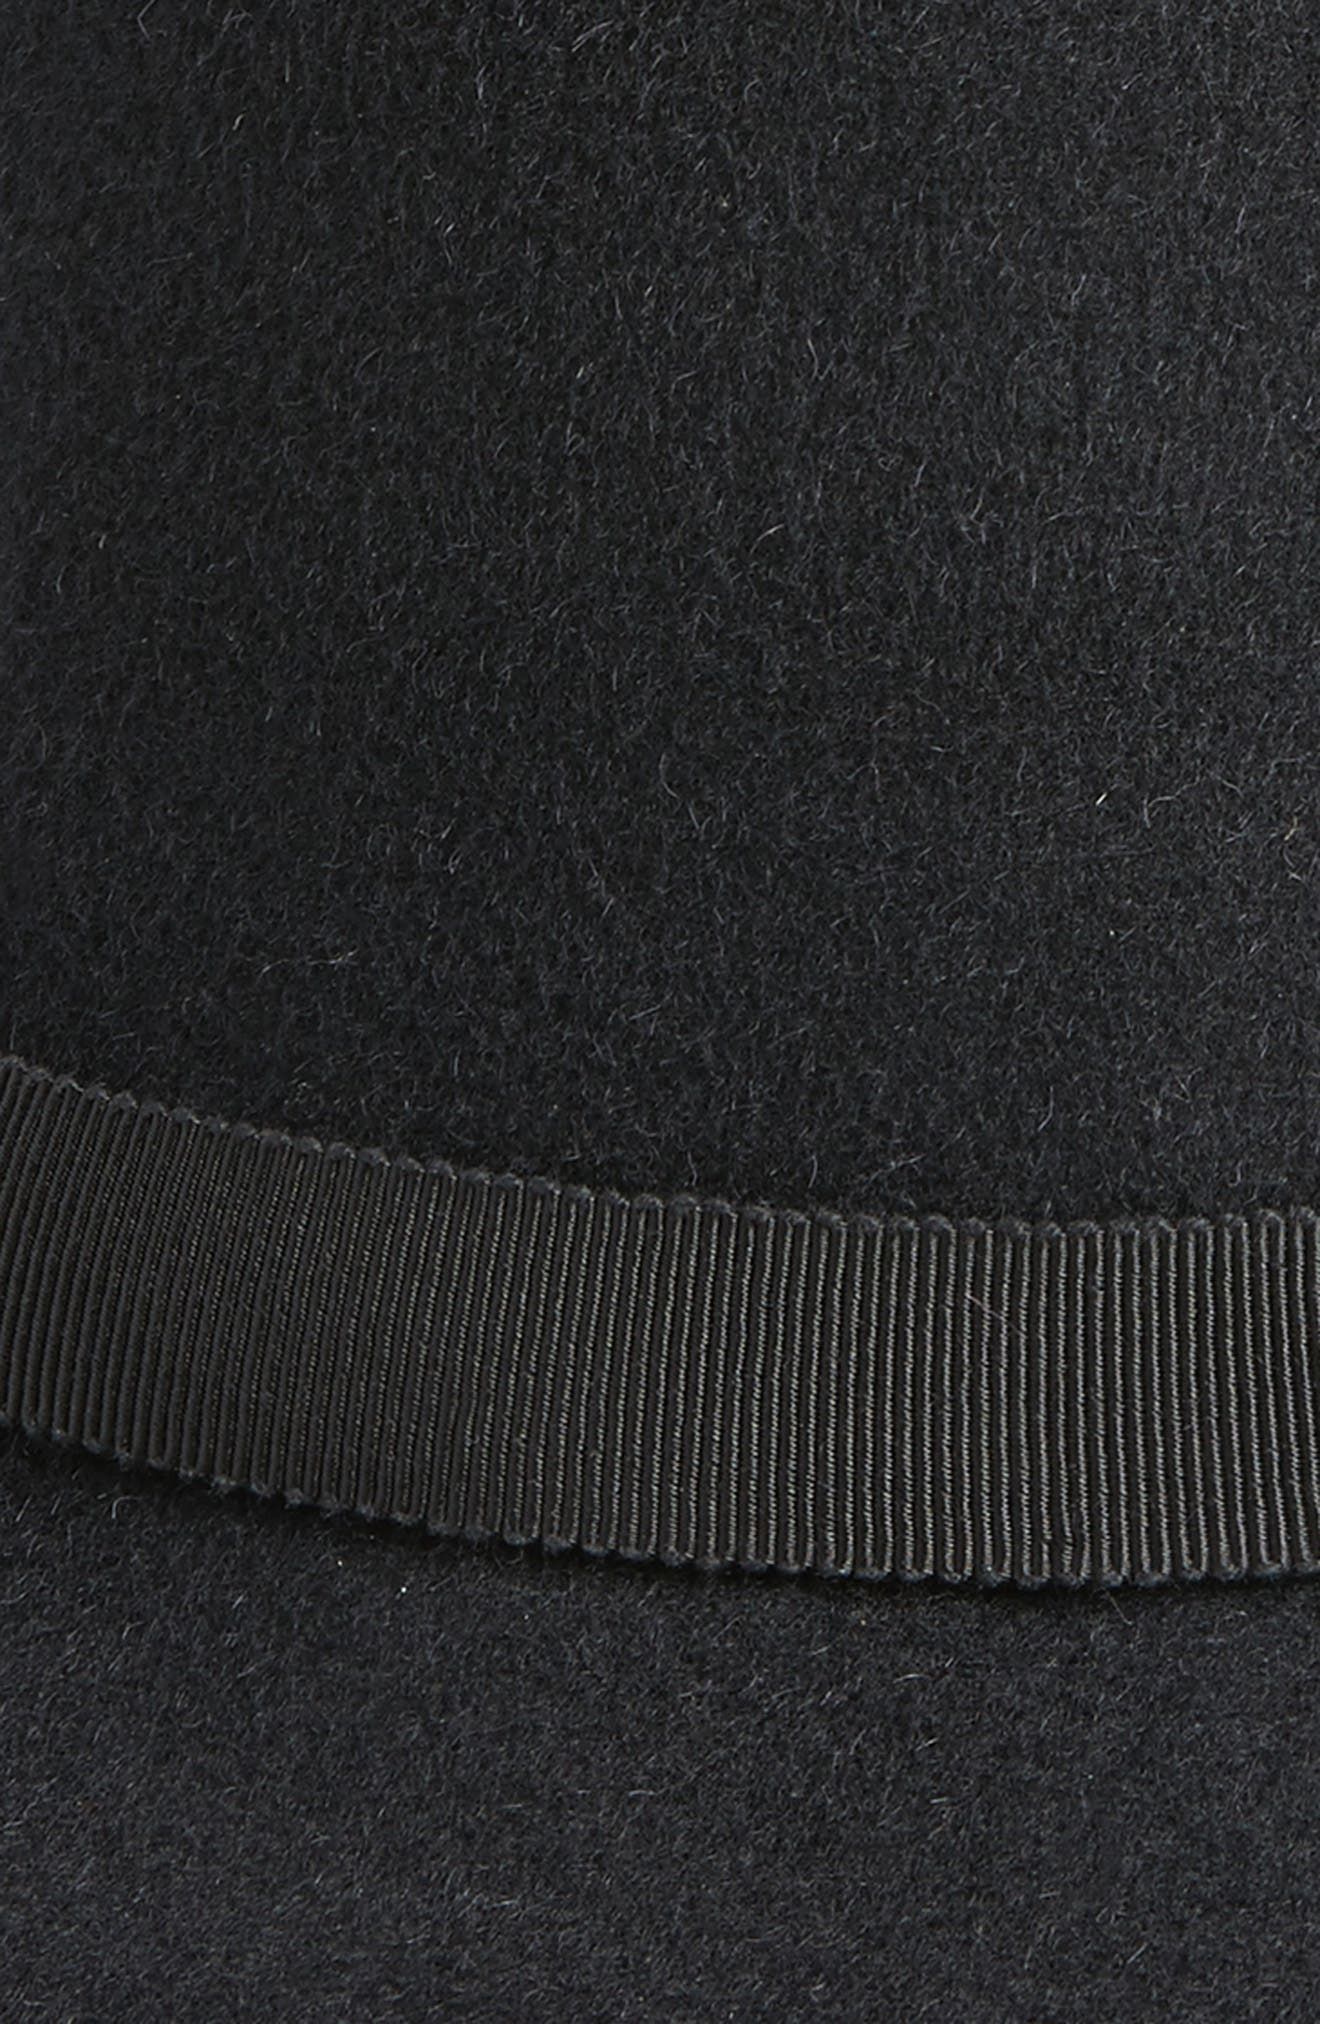 Luxe Tapered Cloche Hat,                             Alternate thumbnail 2, color,